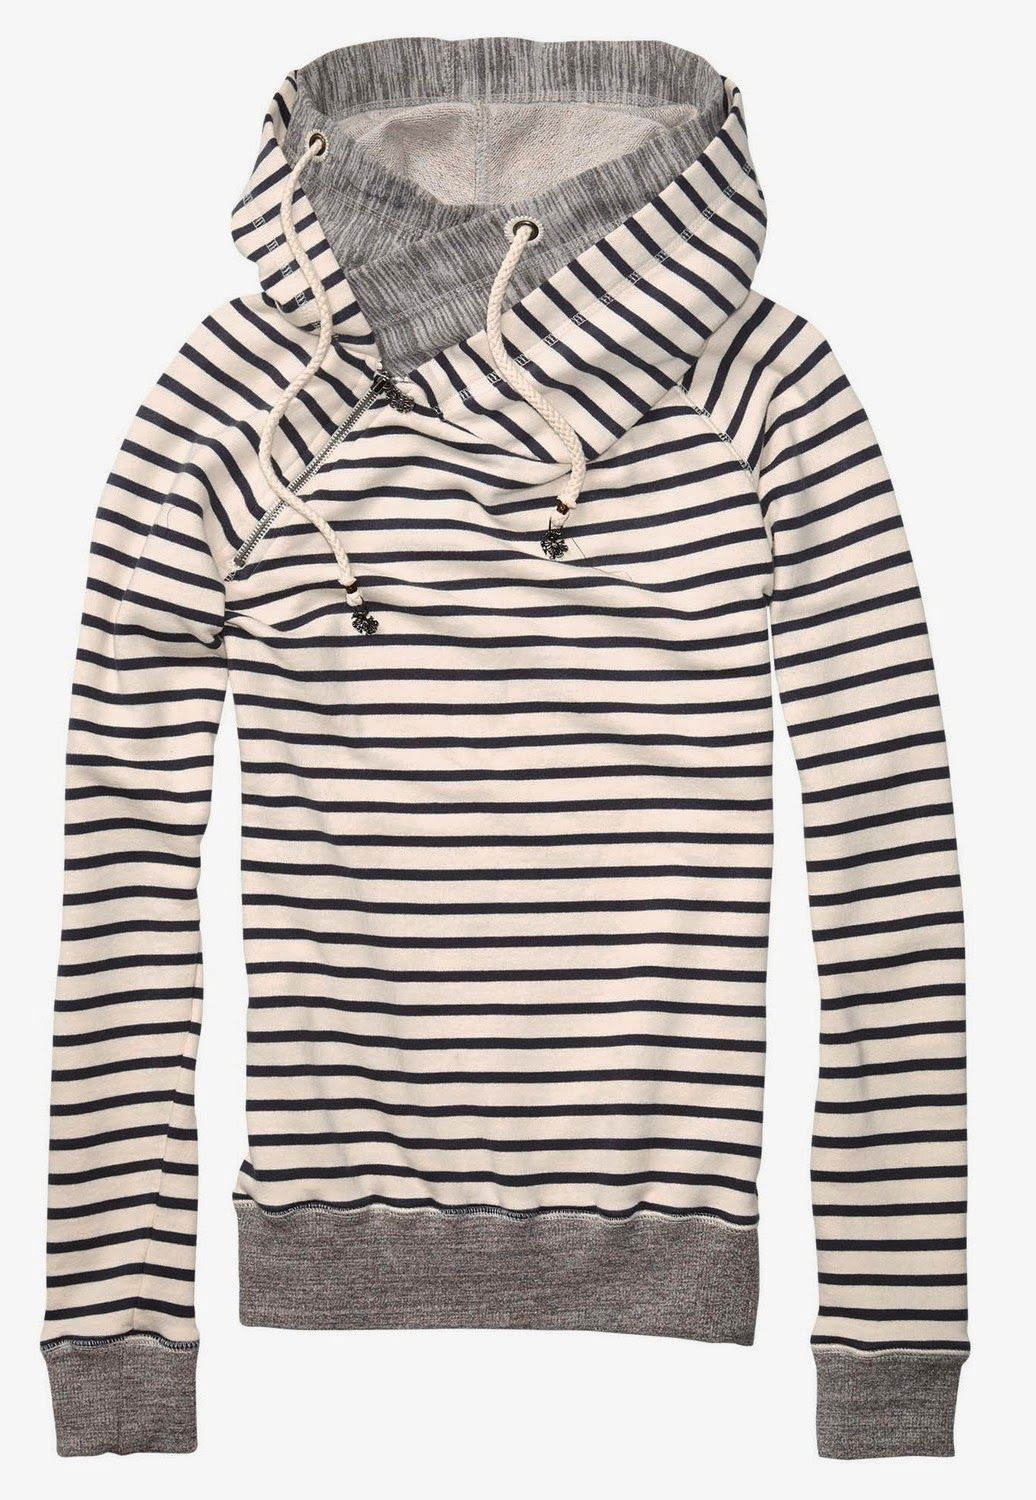 Like this, no stripes though! Cute stripe print sweater with ...